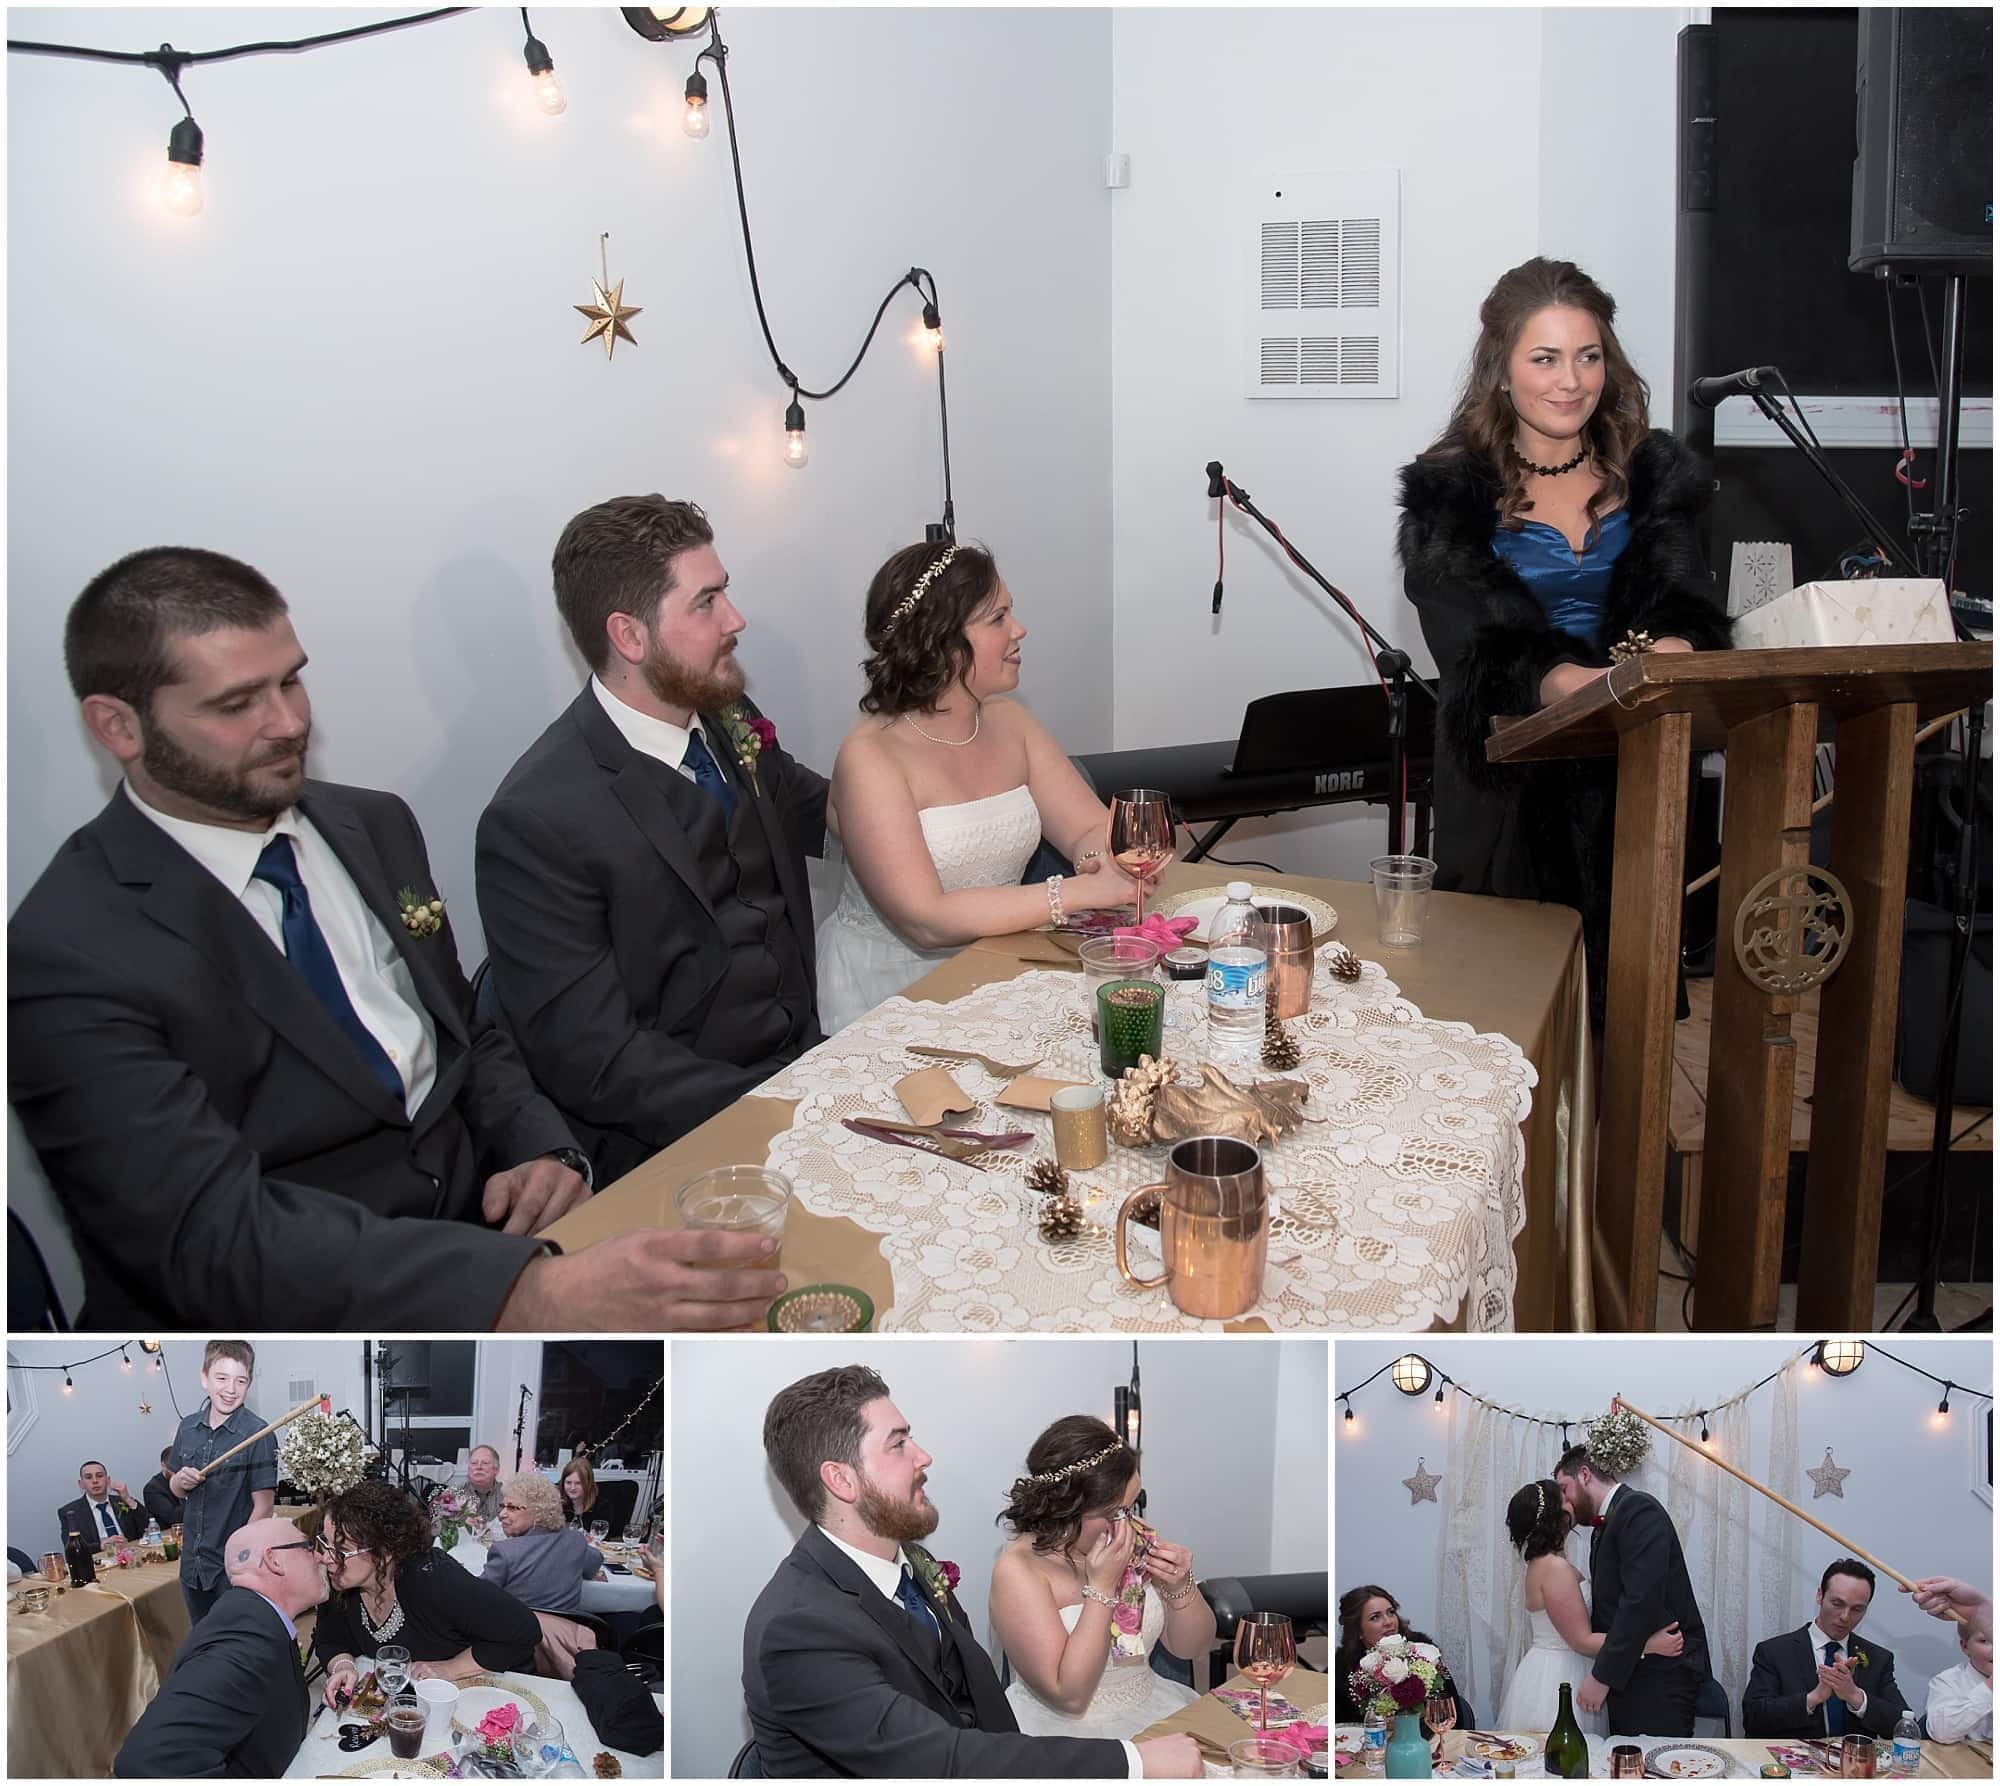 The bride and groom during their wedding reception, kissing under the mistletoe during their winter wedding at Fisherman's Cove in Eastern Passage.